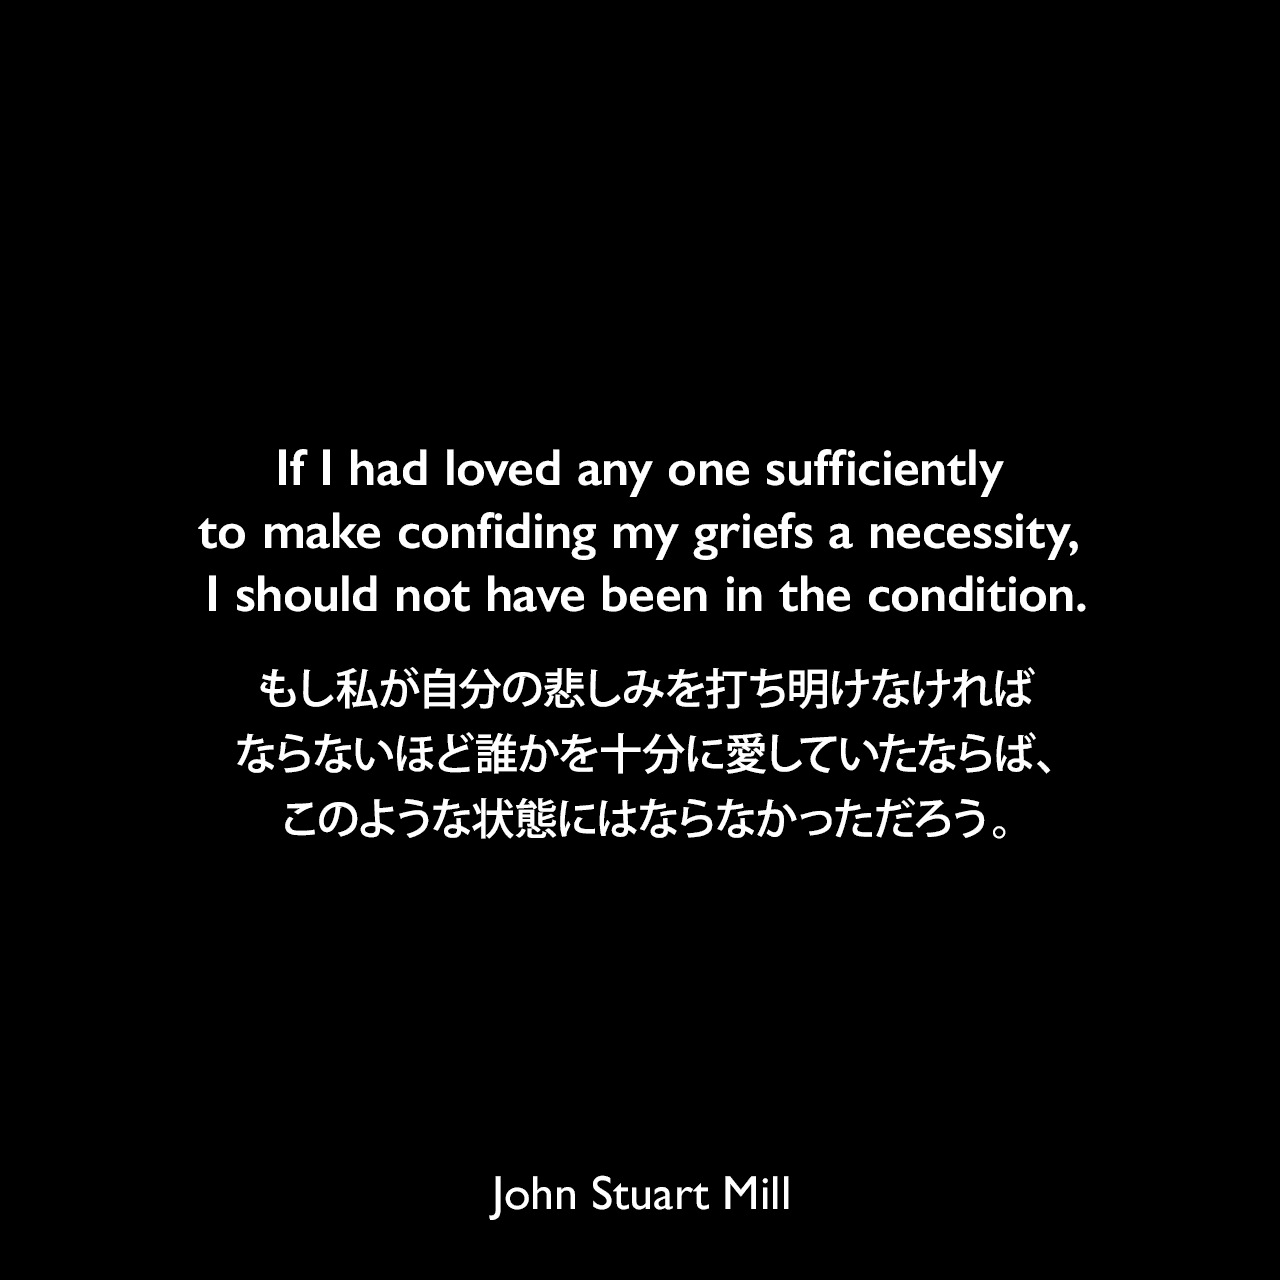 If I had loved any one sufficiently to make confiding my griefs a necessity, I should not have been in the condition.もし私が自分の悲しみを打ち明けなければならないほど誰かを十分に愛していたならば、このような状態にはならなかっただろう。- ジョン・スチュアート・ミルの自伝よりJohn Stuart Mill